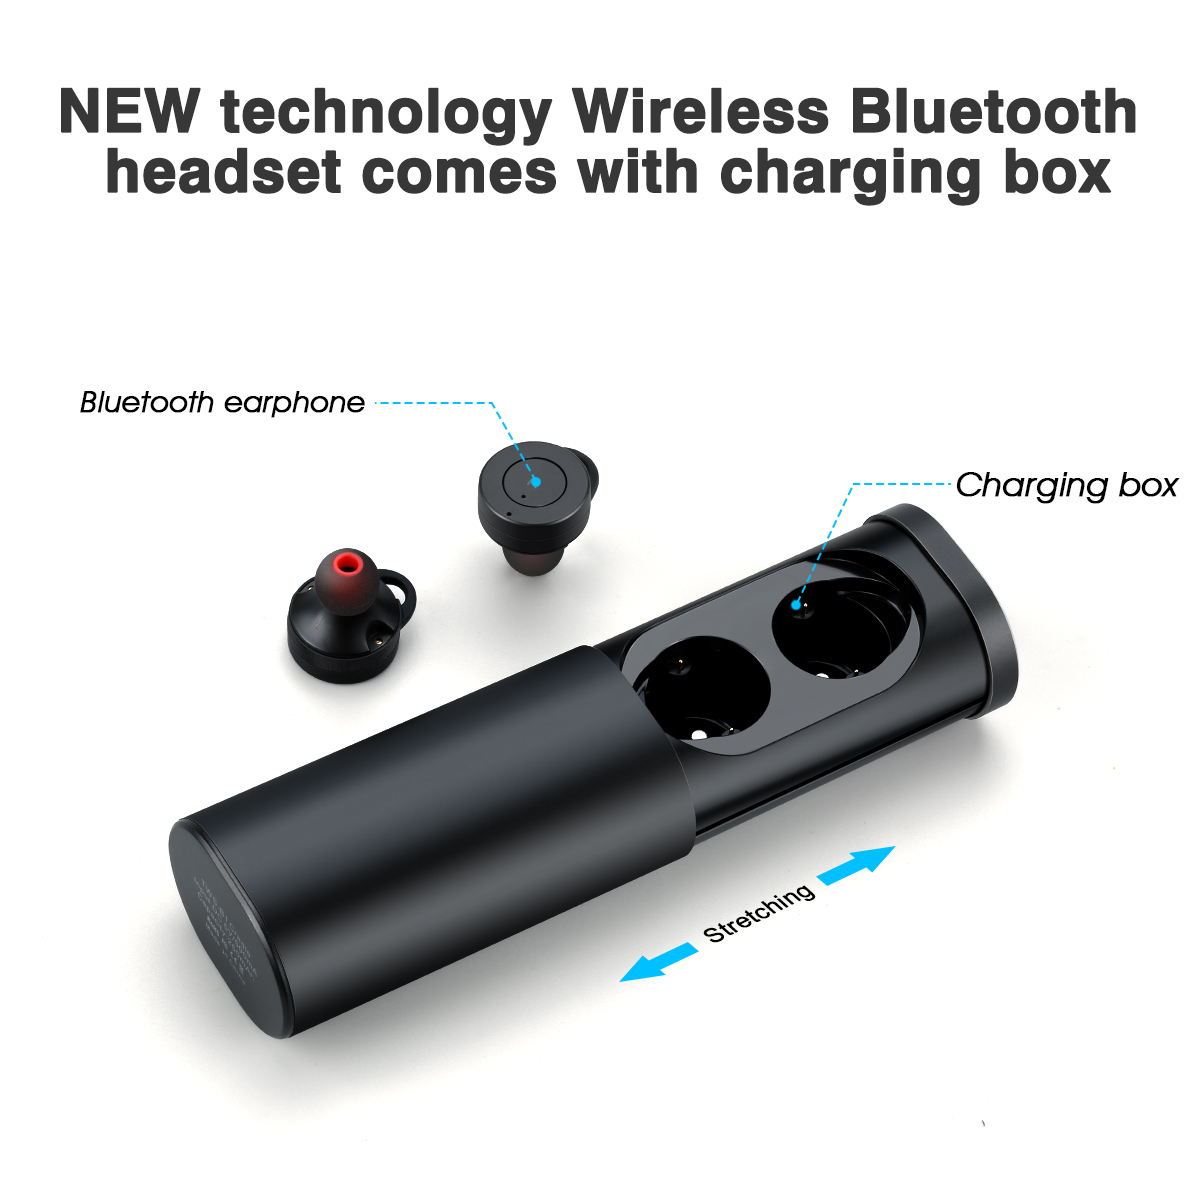 78920f13911 True Wireless Earbuds Stereo Bluetooth Headphones with Charging Case. Premium  Sound - Secure Fit - Easy to Pair - Walmart.com